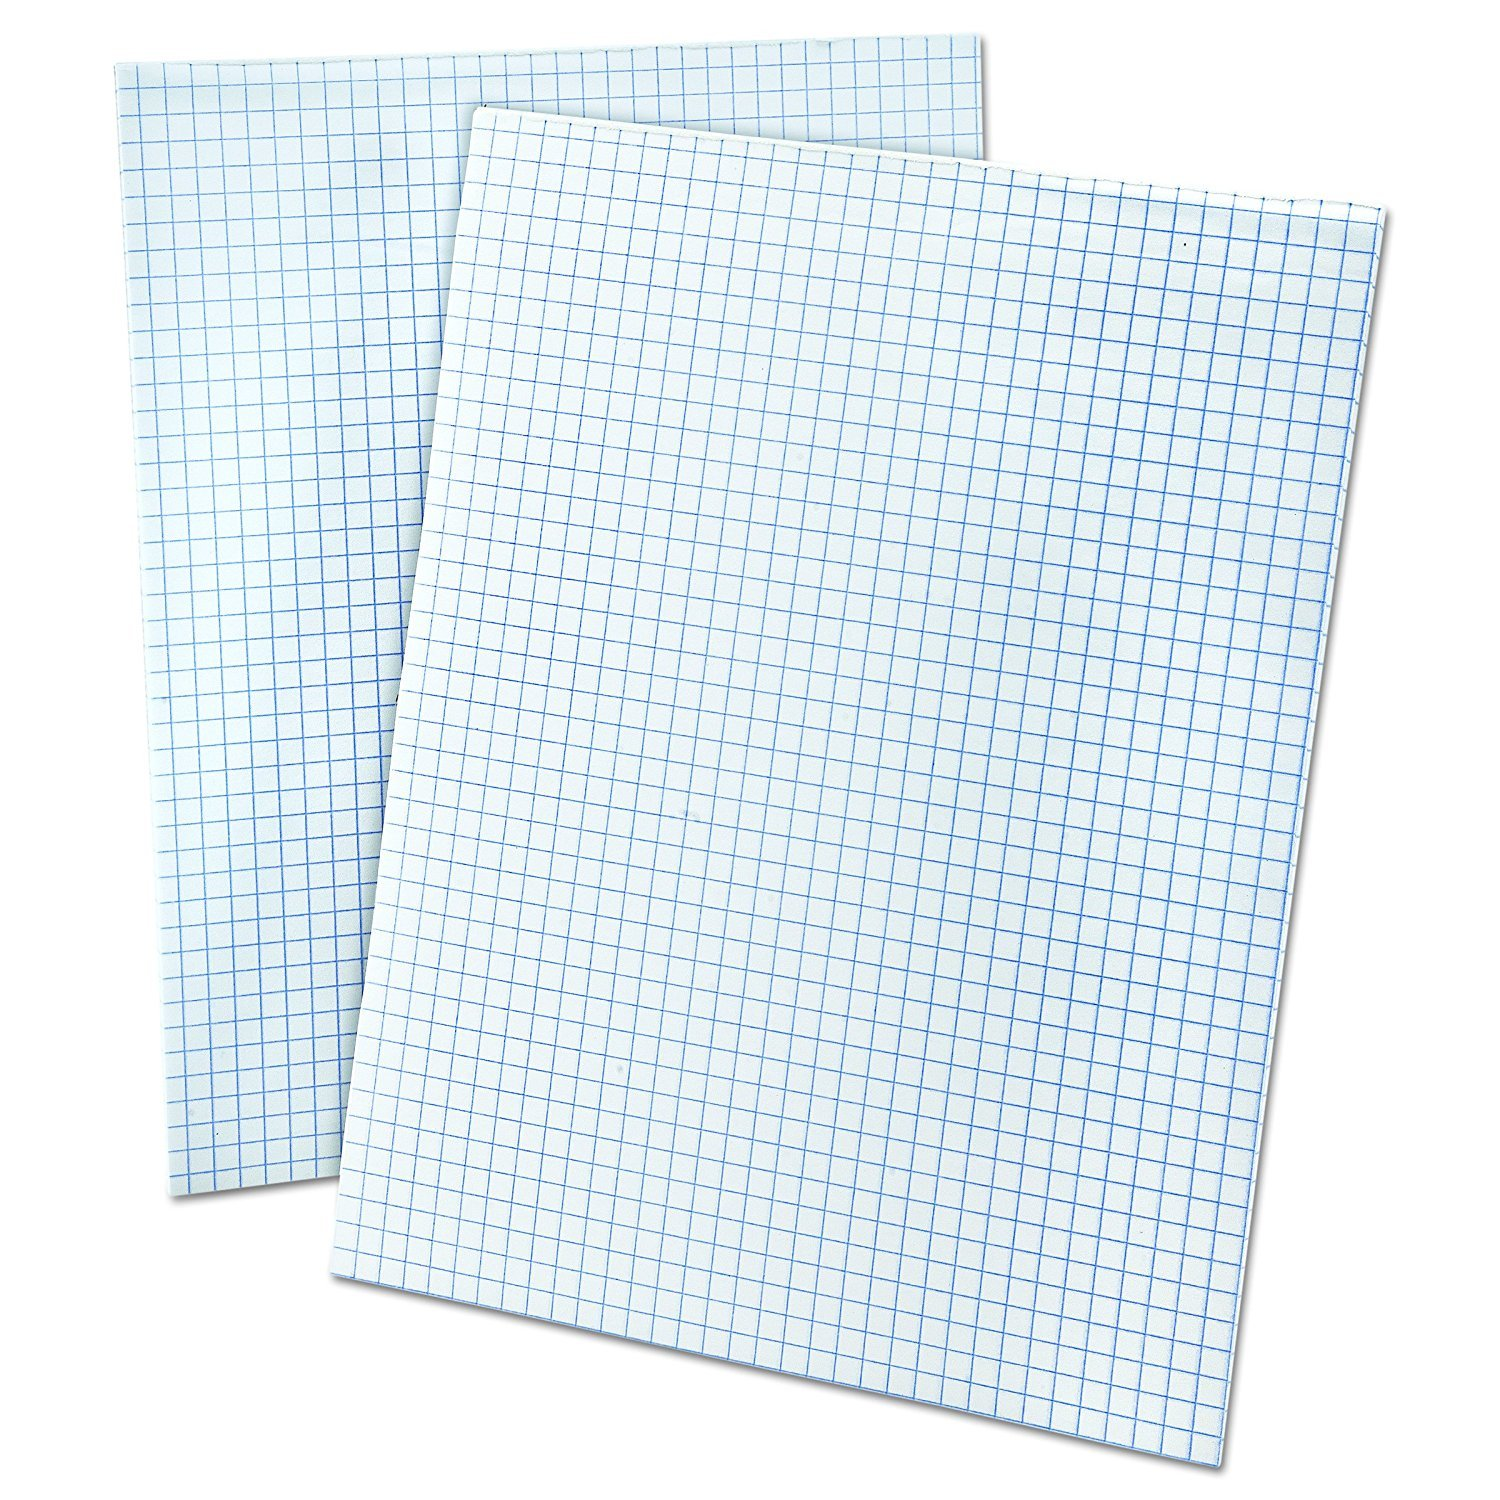 Ampad 8 1/2 x 11 Inches White Quad Pad, 4 Square Inch, 50 Sheets, 1 Each (22-030C) (2 Pack)